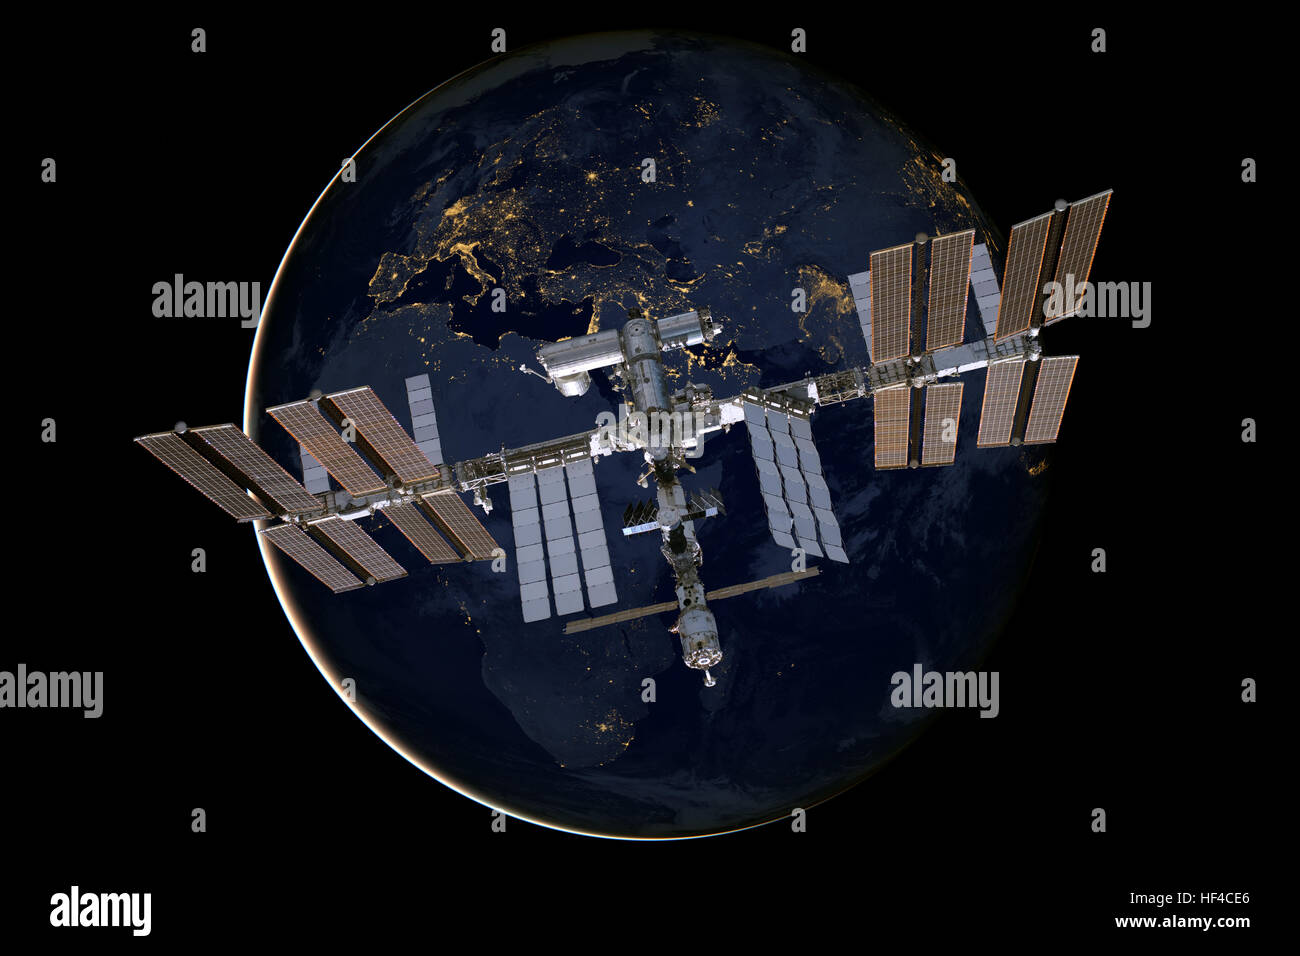 International Space Station over the planet Earth. - Stock Image